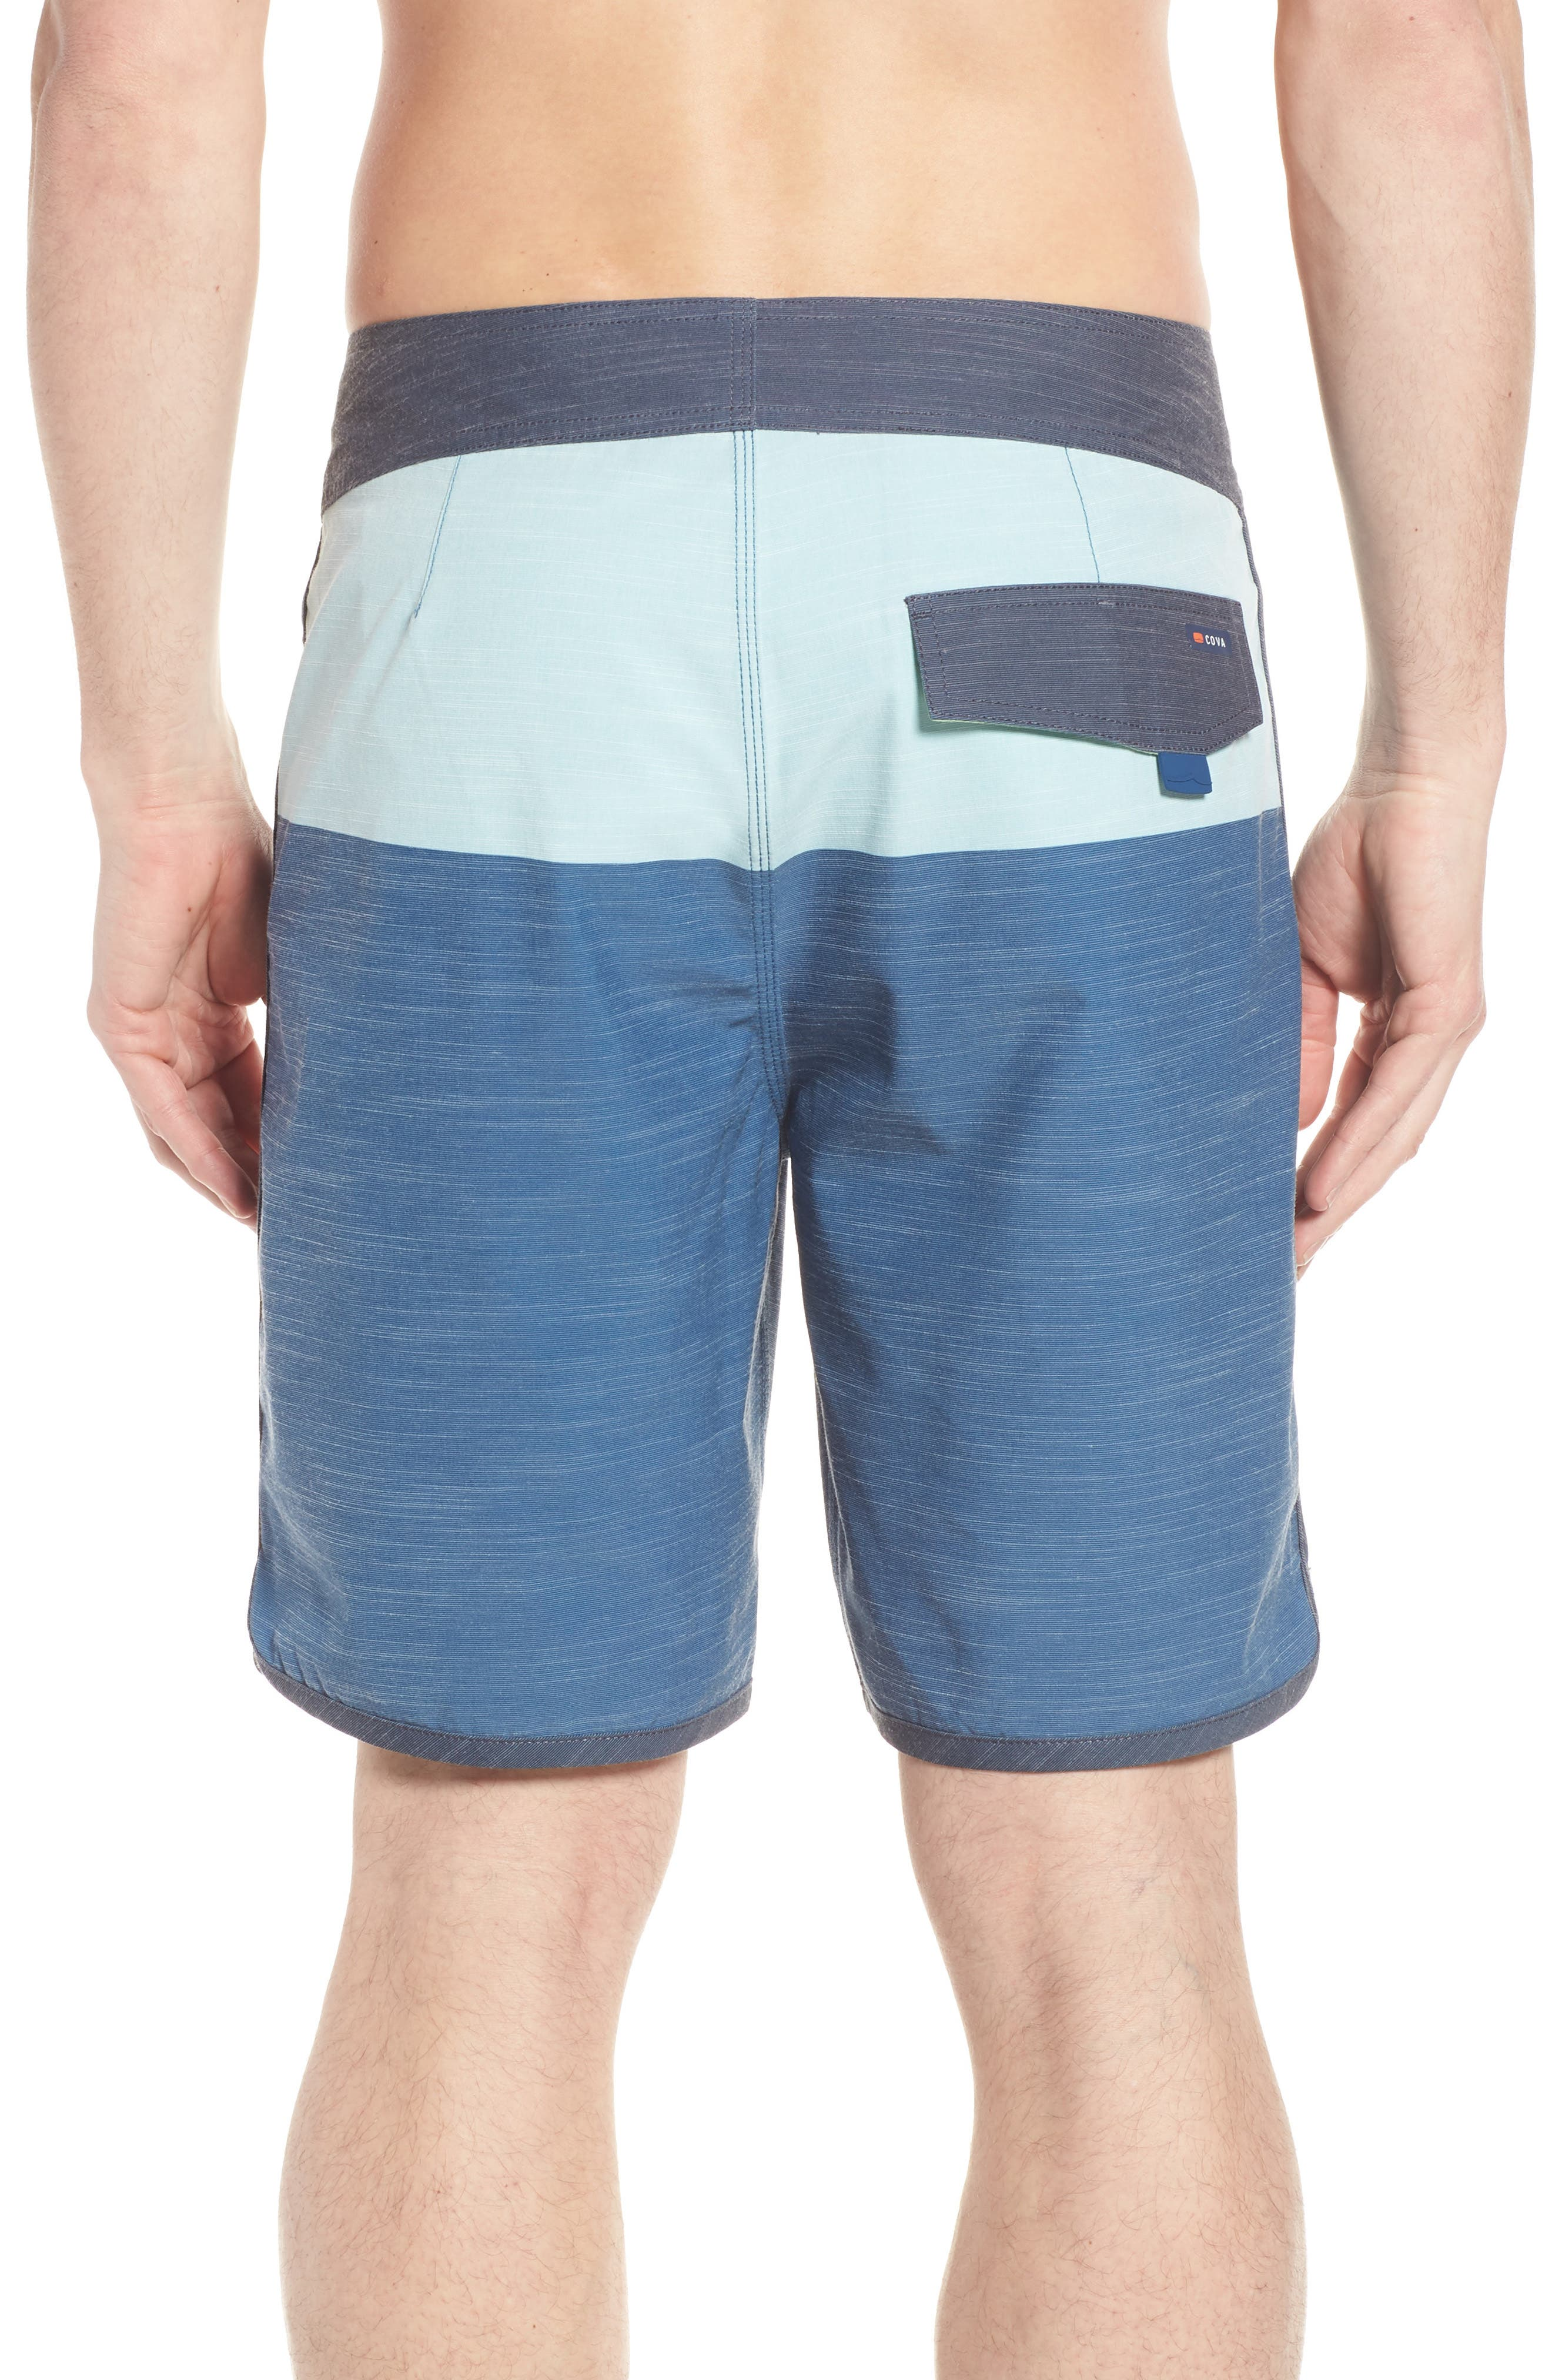 Beachcomber Board Shorts,                             Alternate thumbnail 2, color,                             423